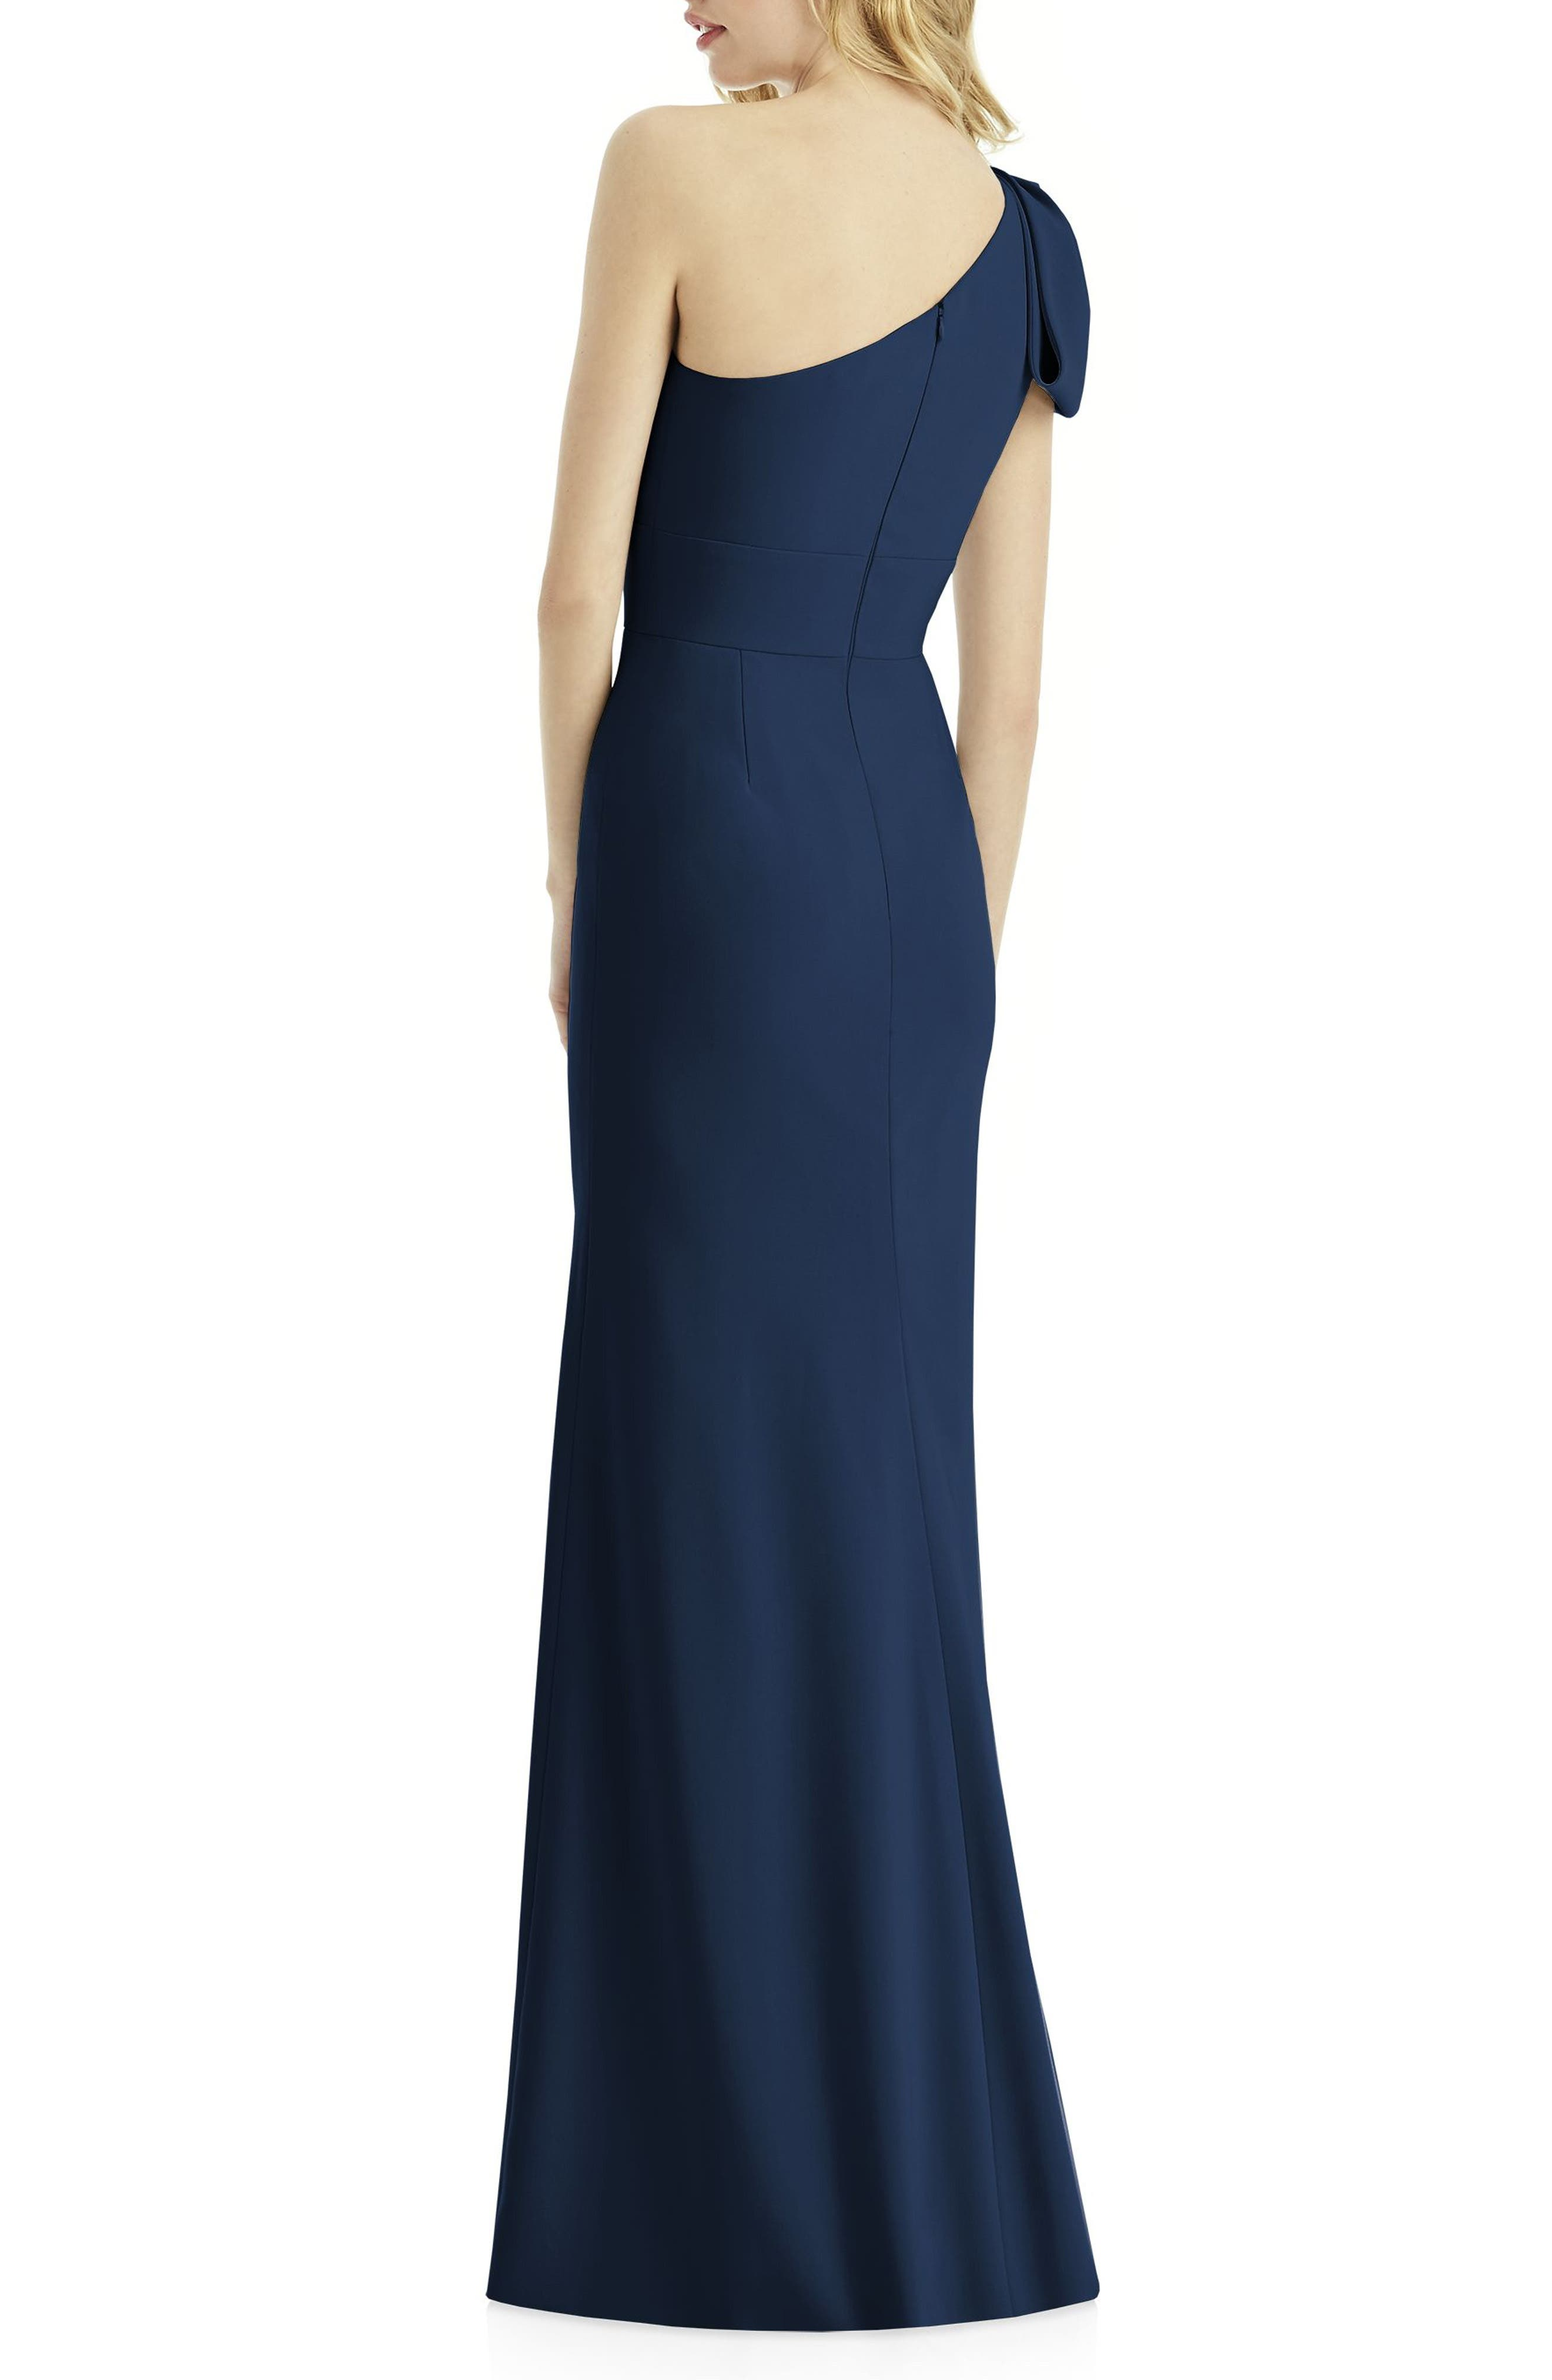 AFTER SIX, Bow One-Shoulder Gown, Alternate thumbnail 2, color, MIDNIGHT